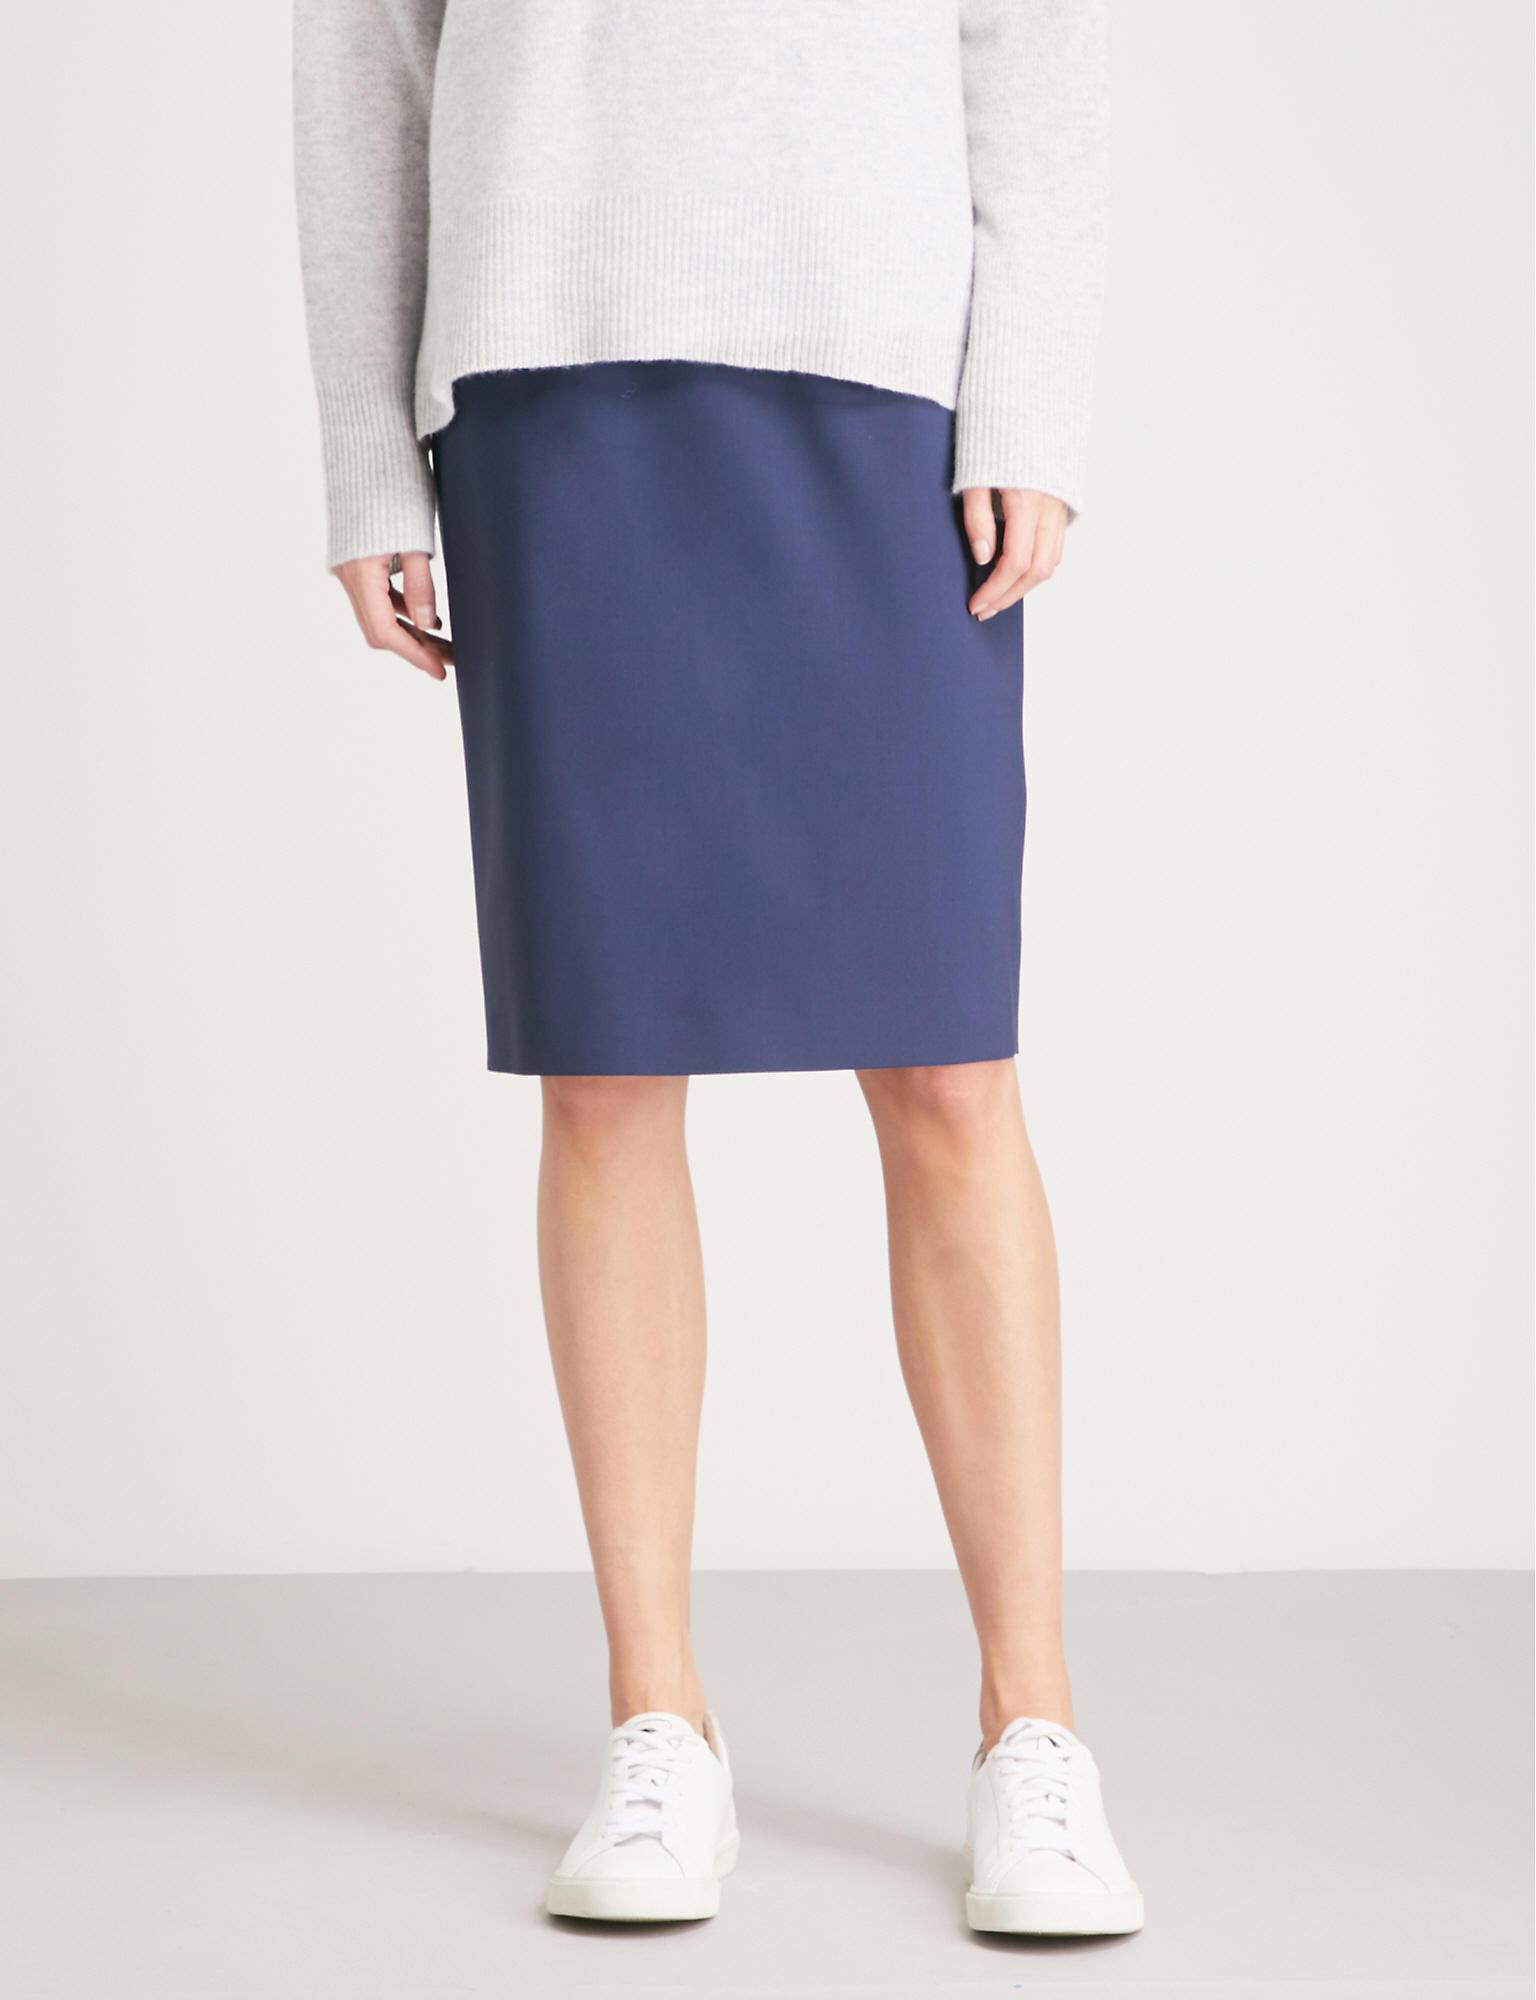 27c406f17 Theory Womens Pencil Edition Skirt Clothing Wear to Work